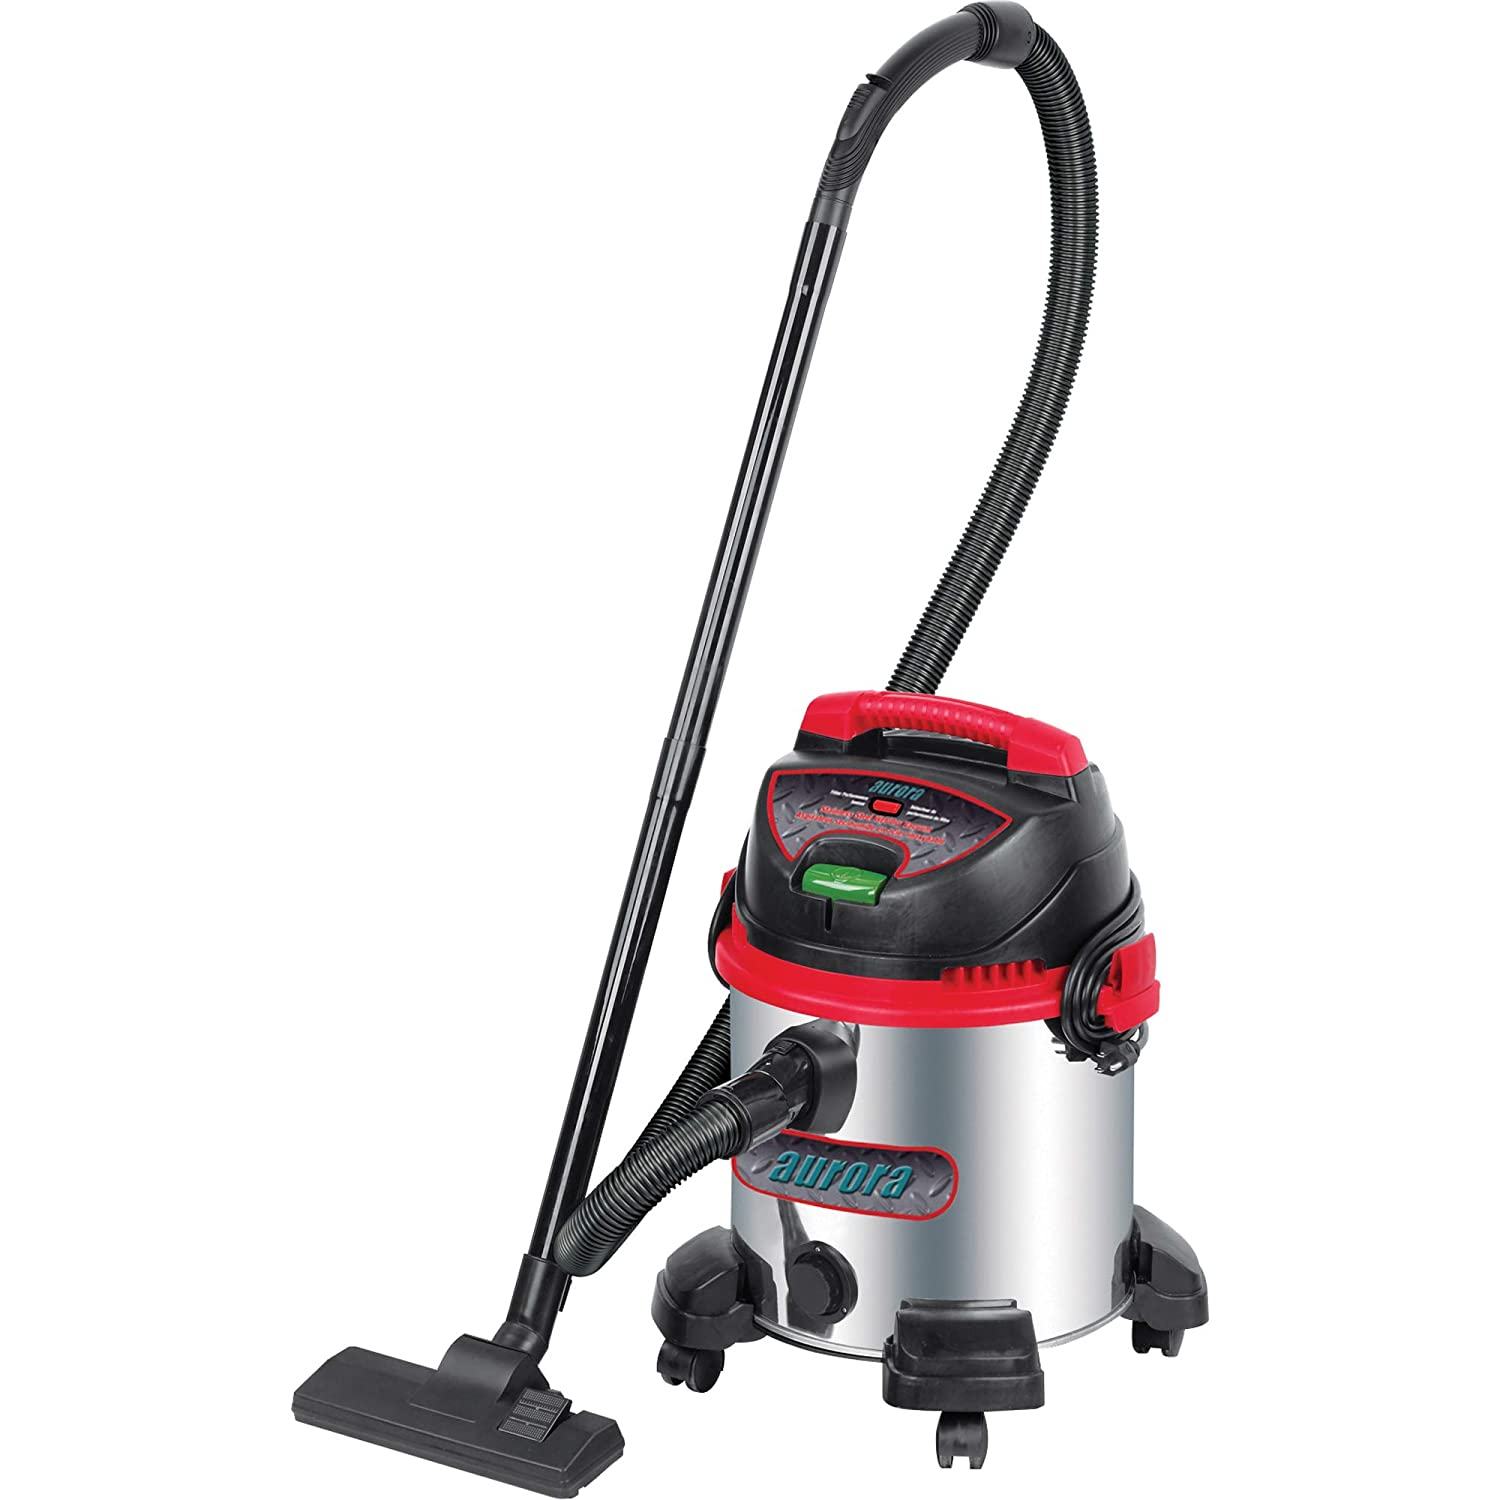 Aurora Tools Industrial Wet/Dry Stainless Steel Vacuum, 5.5 Peak HP, Tank Capacity: 8 US Gal. (30.2 litres)